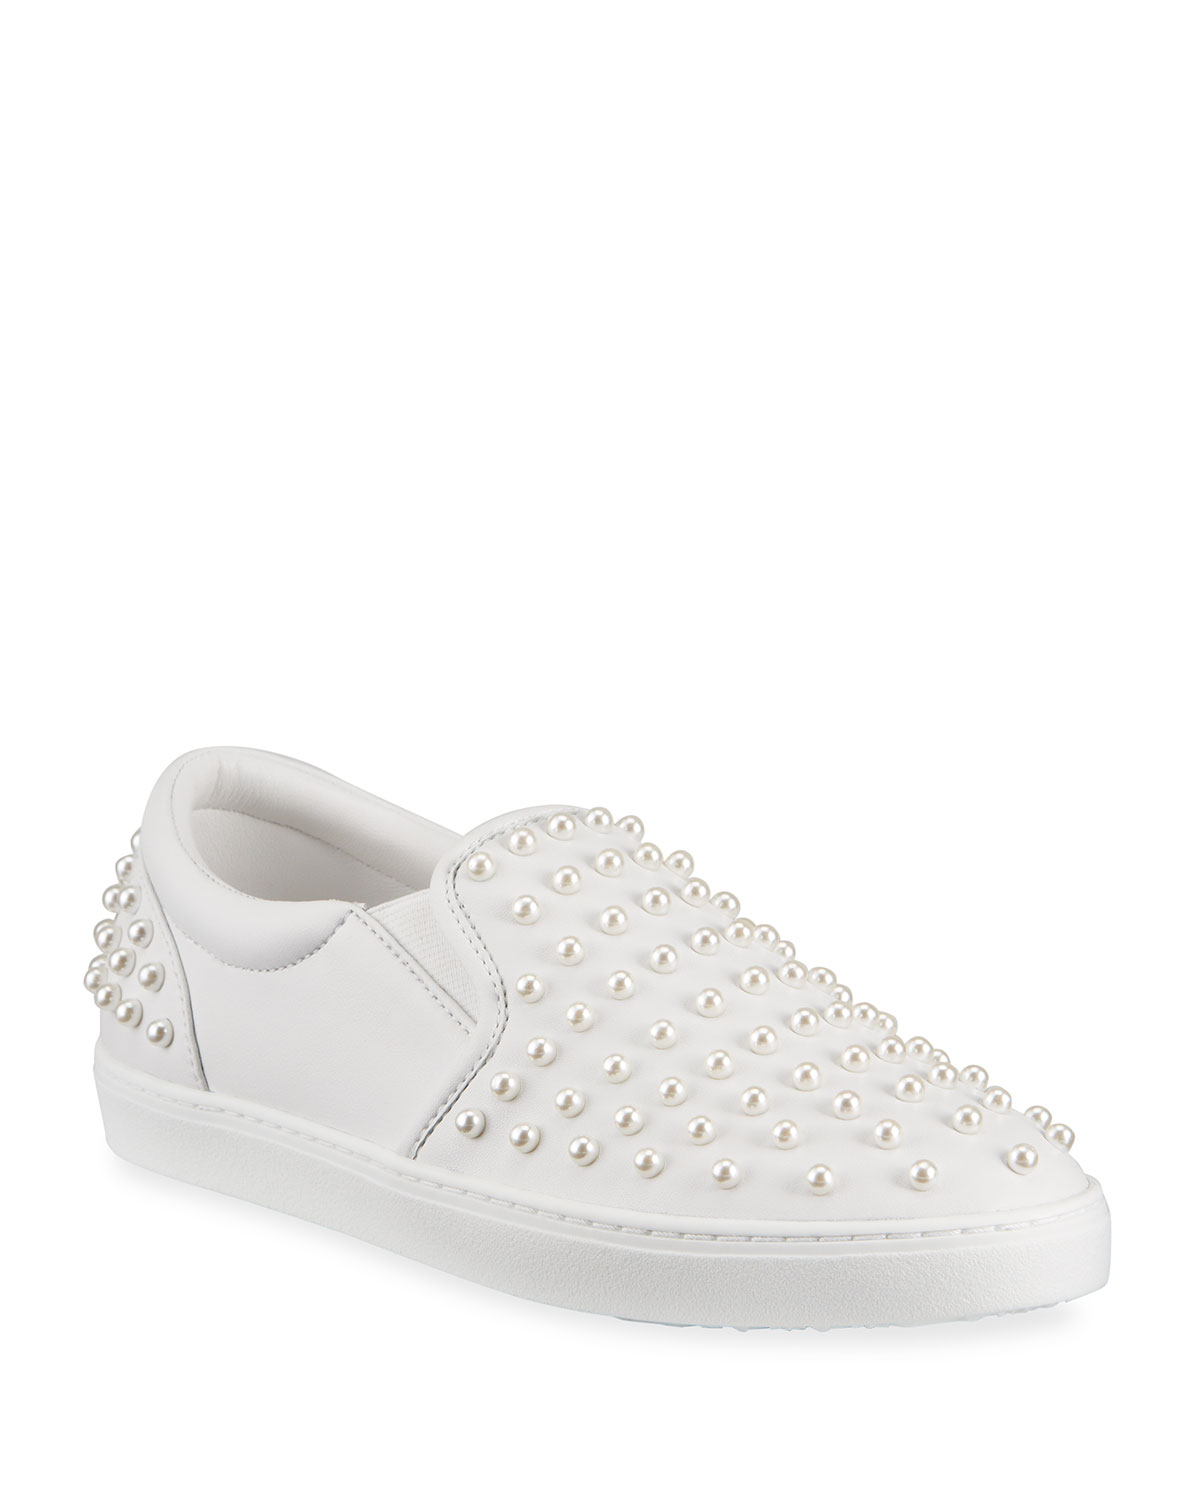 Stuart Weitzman Leathers GOLDIE PEARLY LEATHER SLIP-ON SNEAKERS